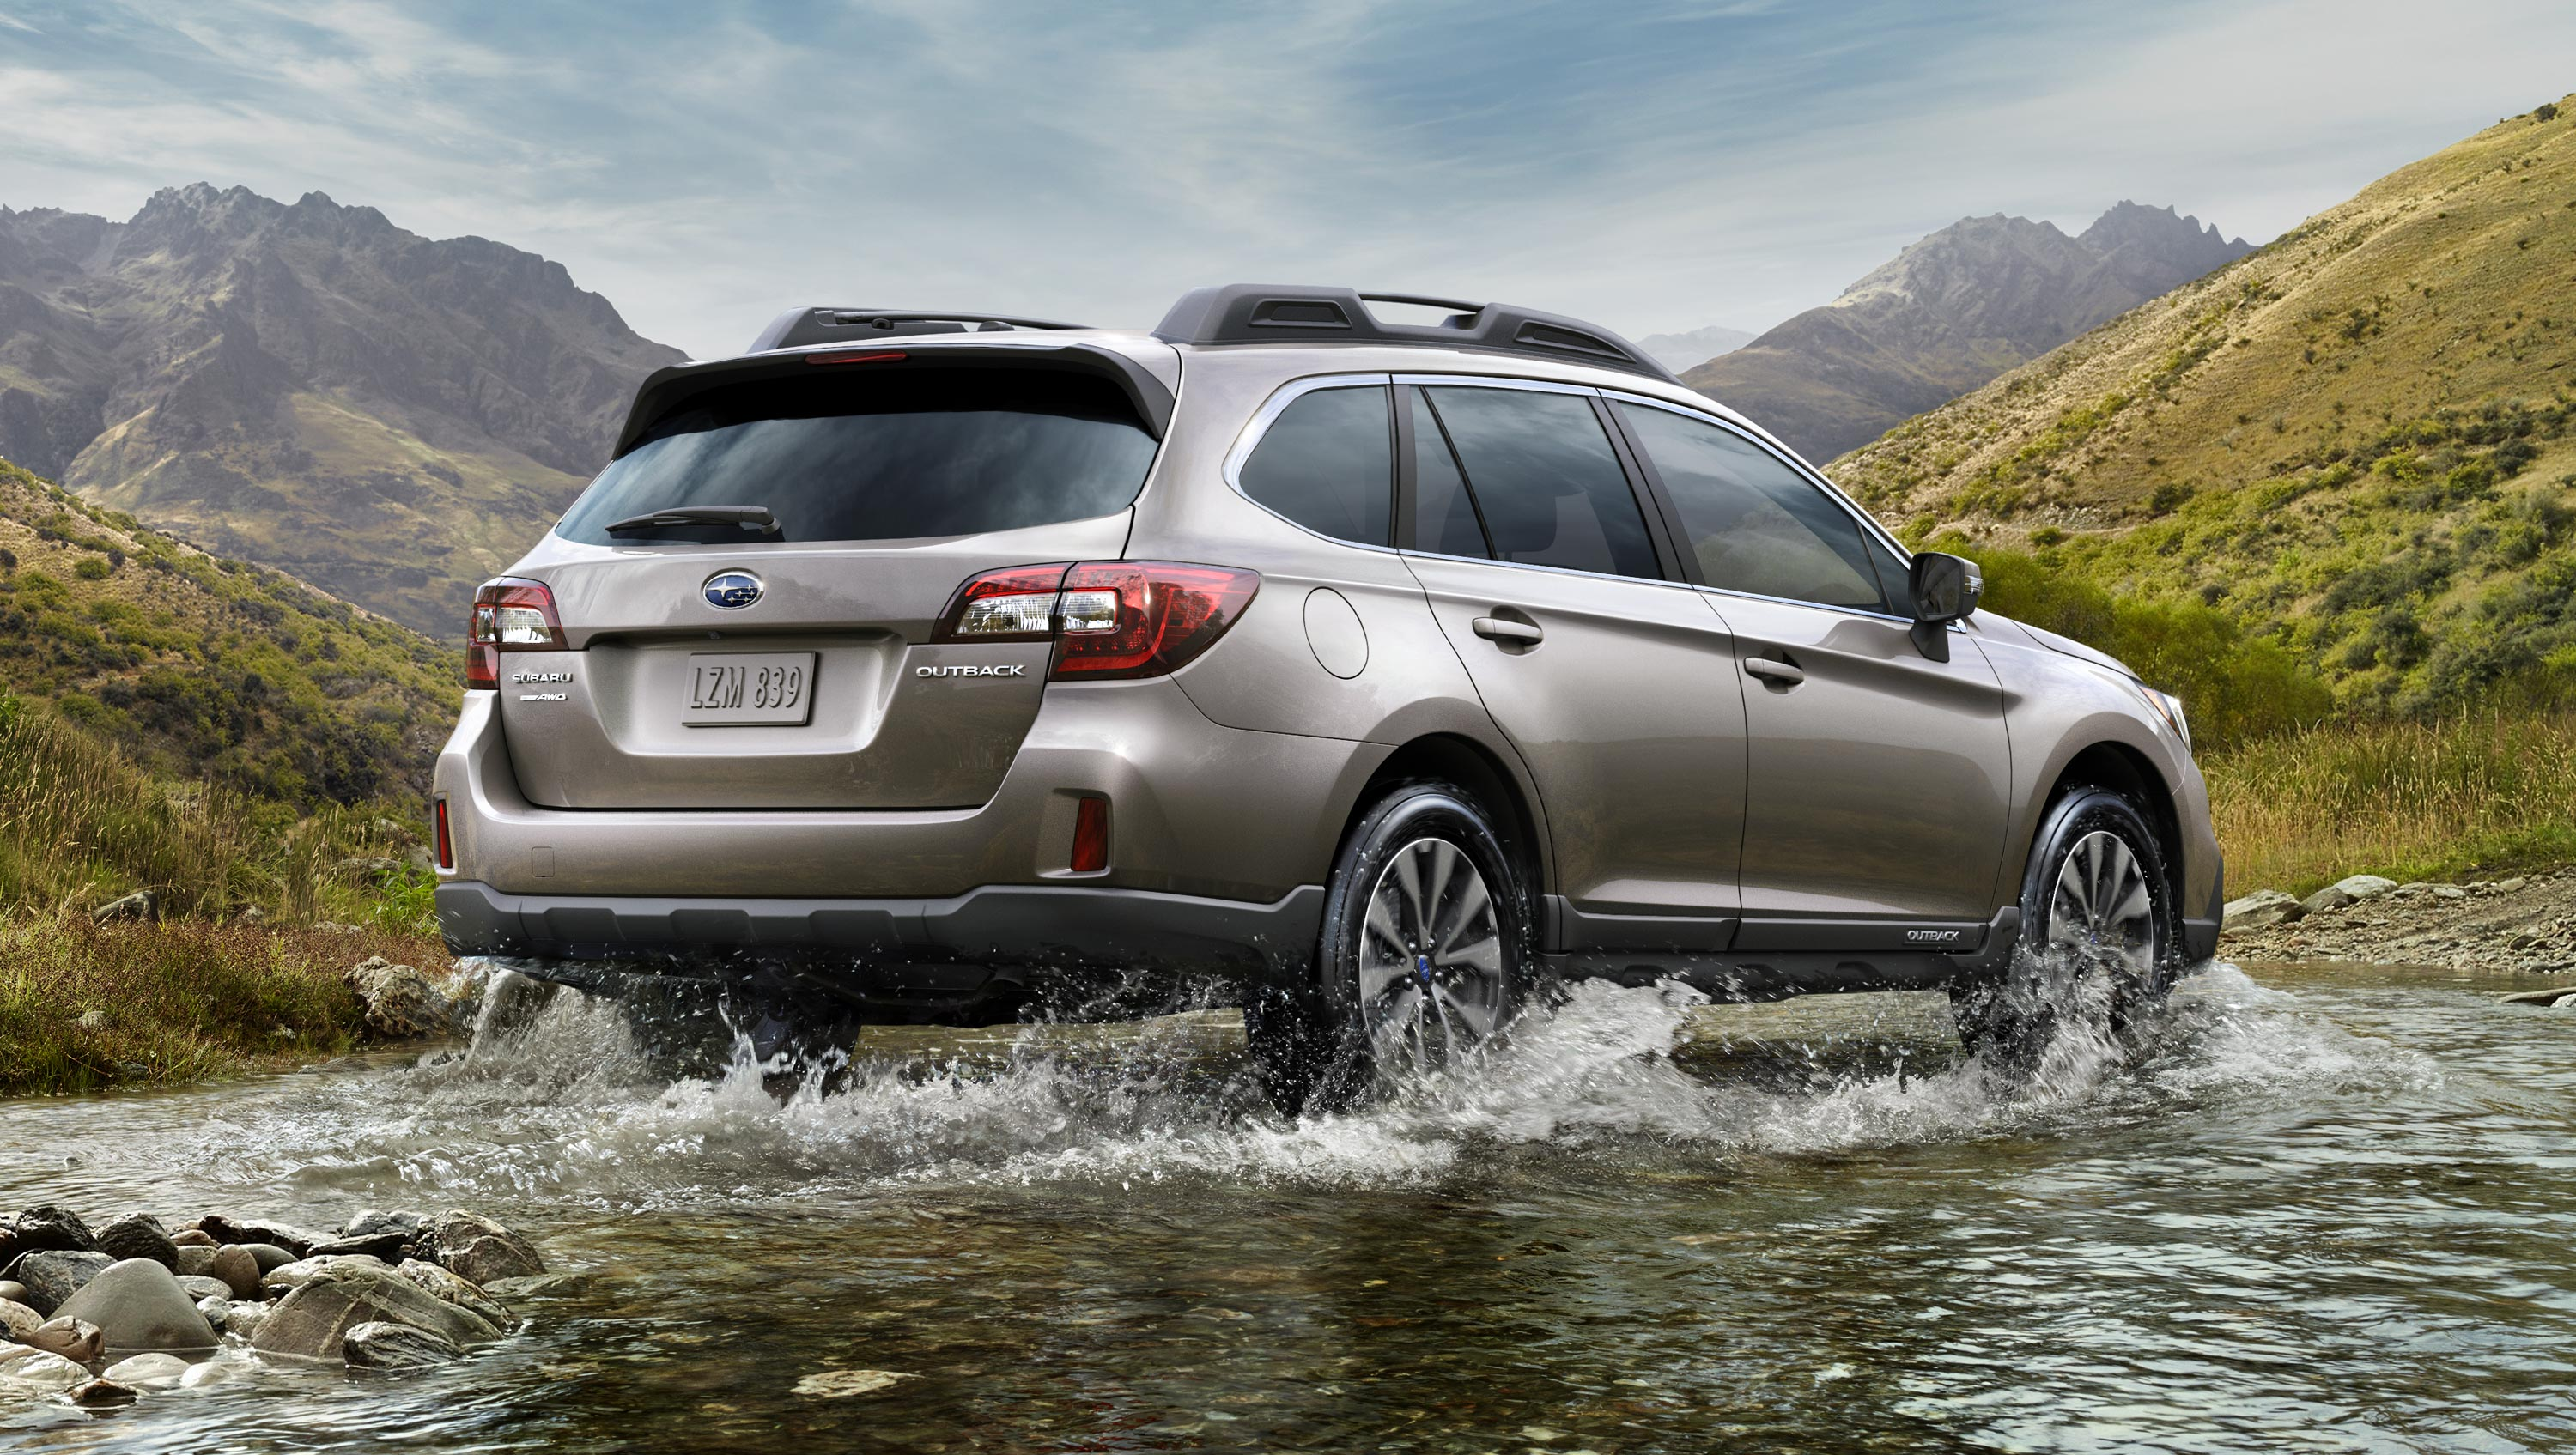 AWD - All-road, all-weather capability = more freedom